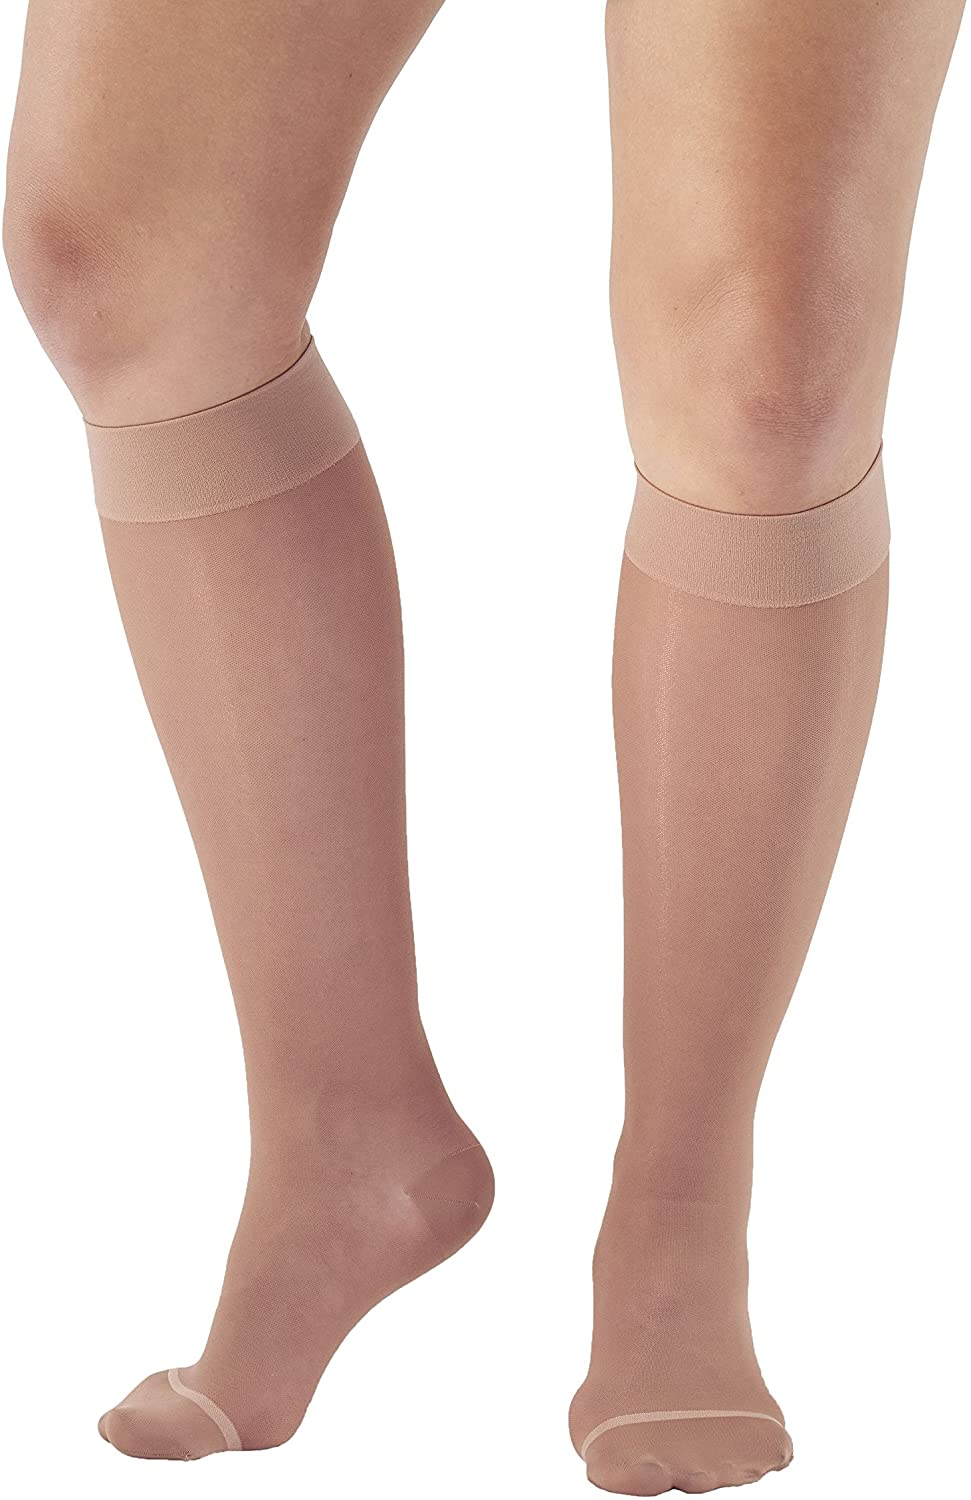 Ames Walker AW Style 16 Sheer Support 15 20mmHg CT Knee High Stockings LtNude LG